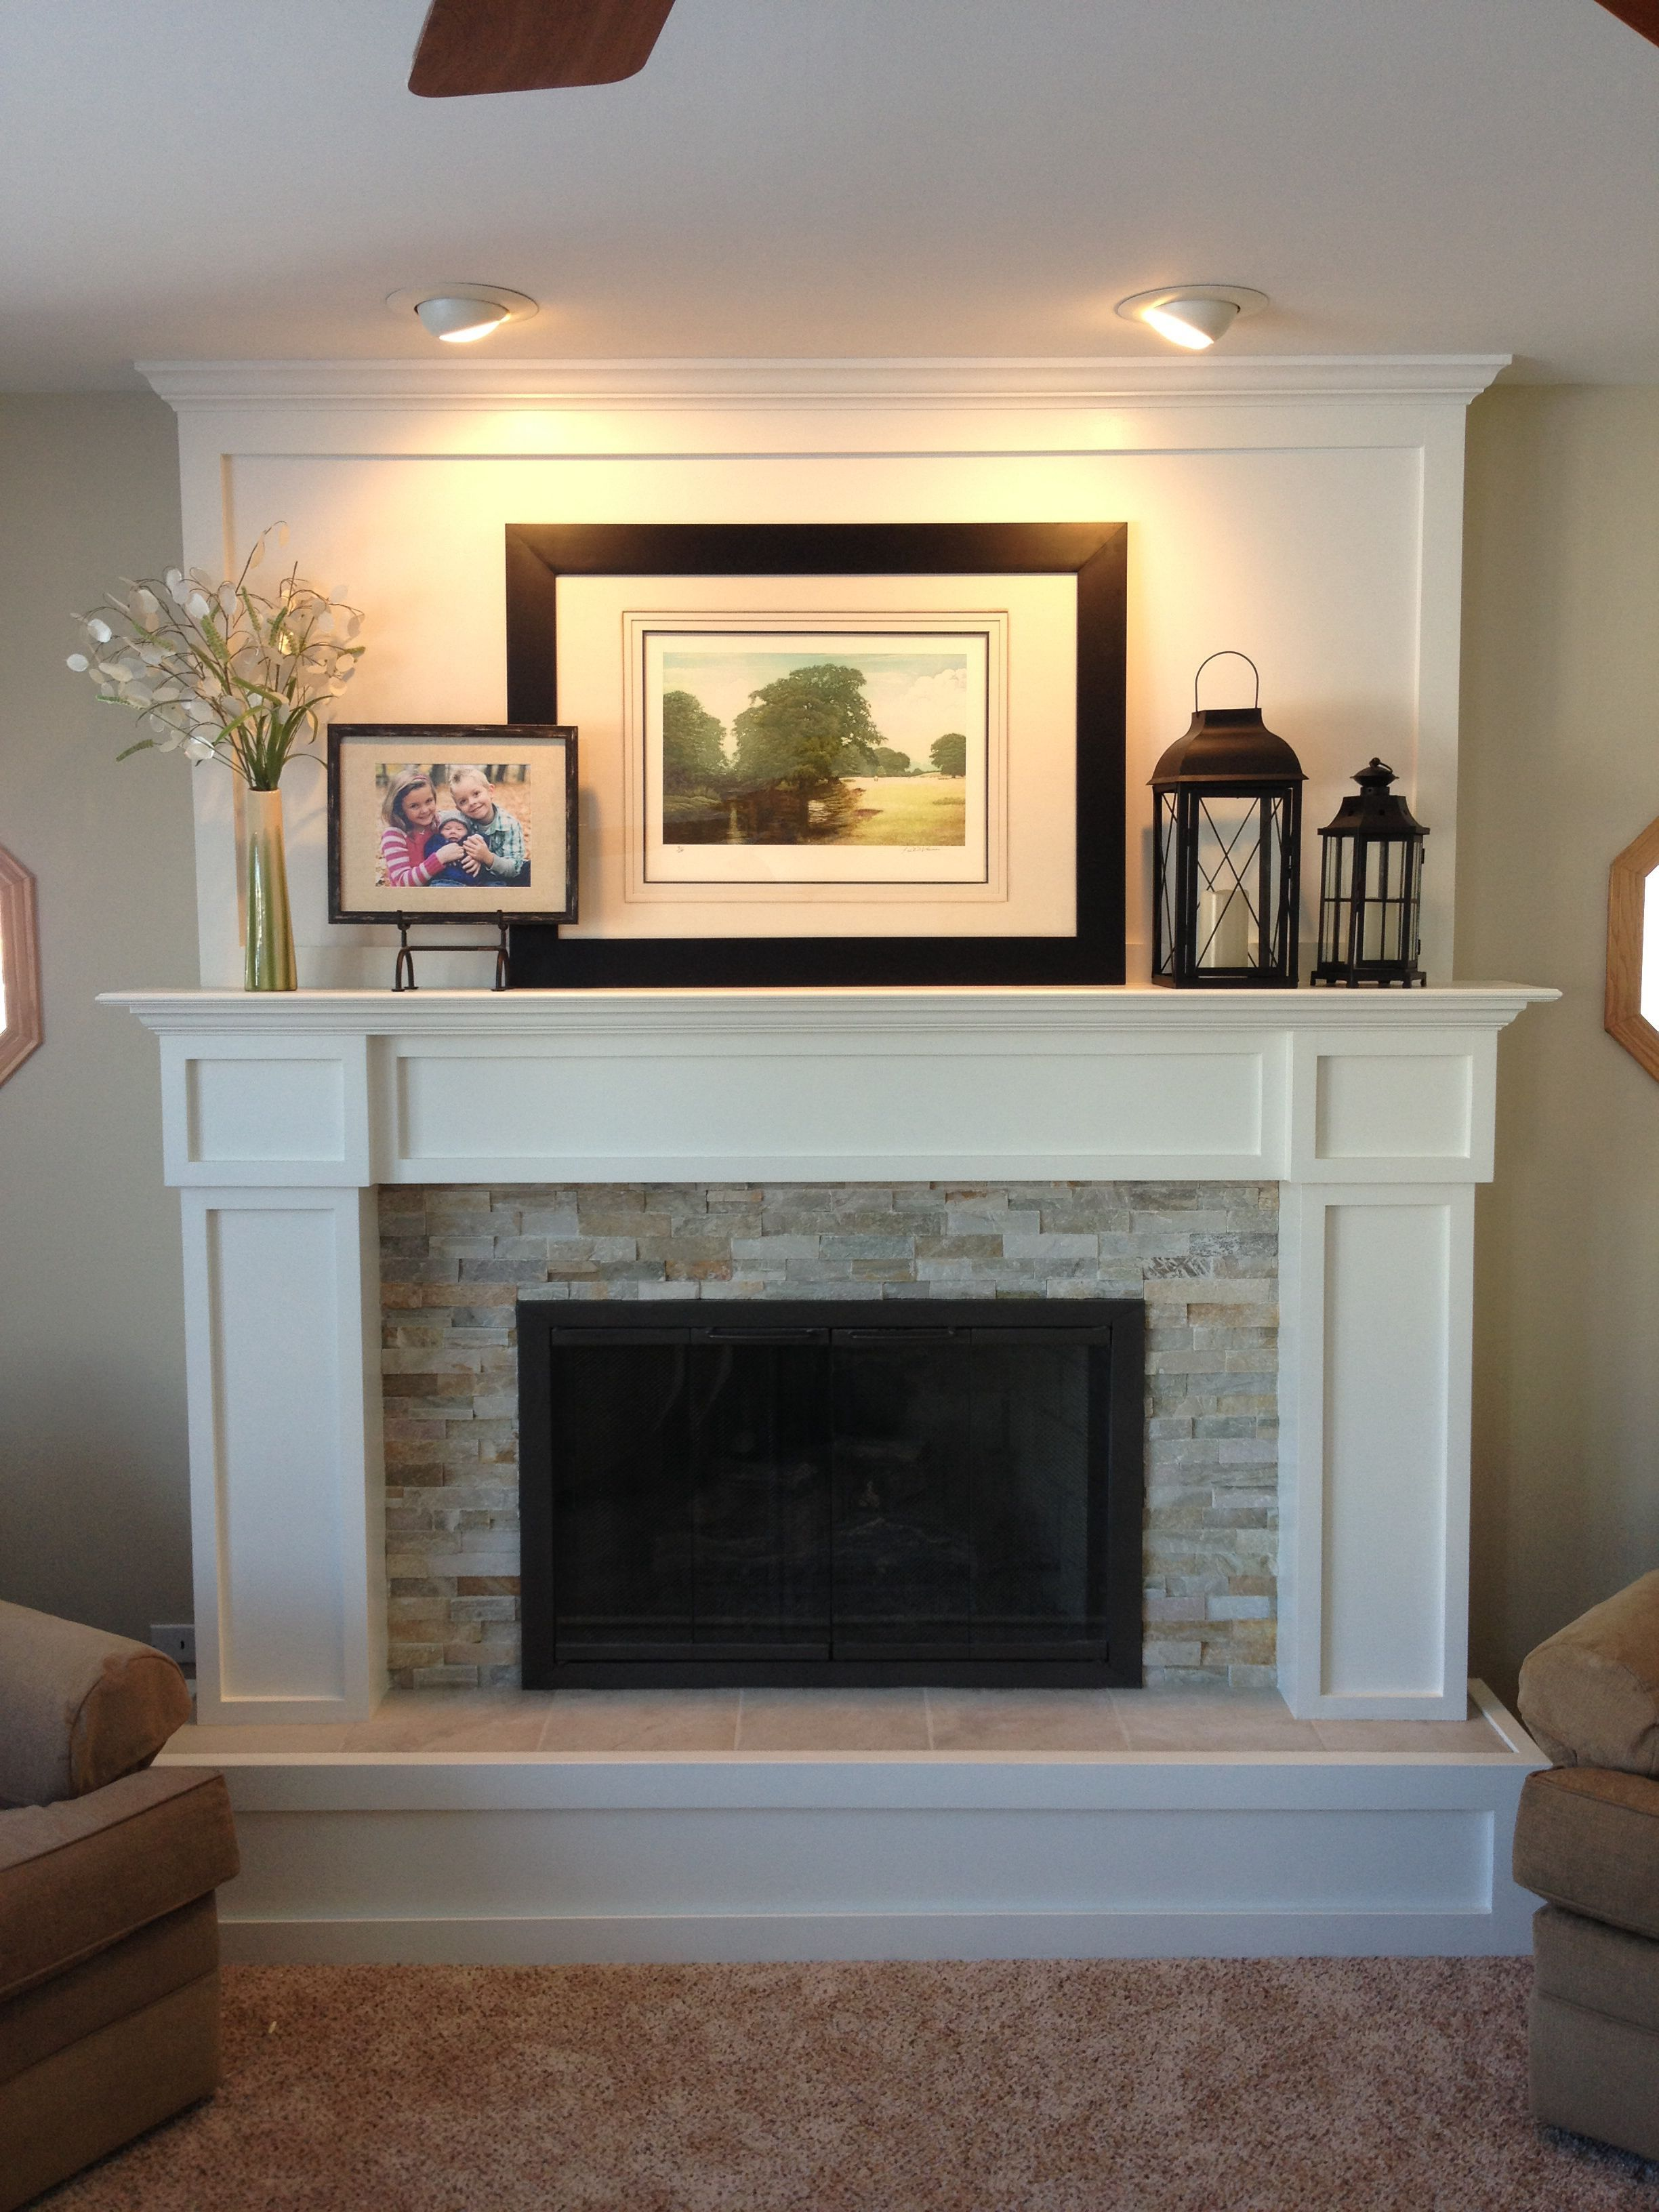 East Bay Fireplace Lovely 9 Easy and Cheap Cool Ideas Fireplace Drawing Chairs